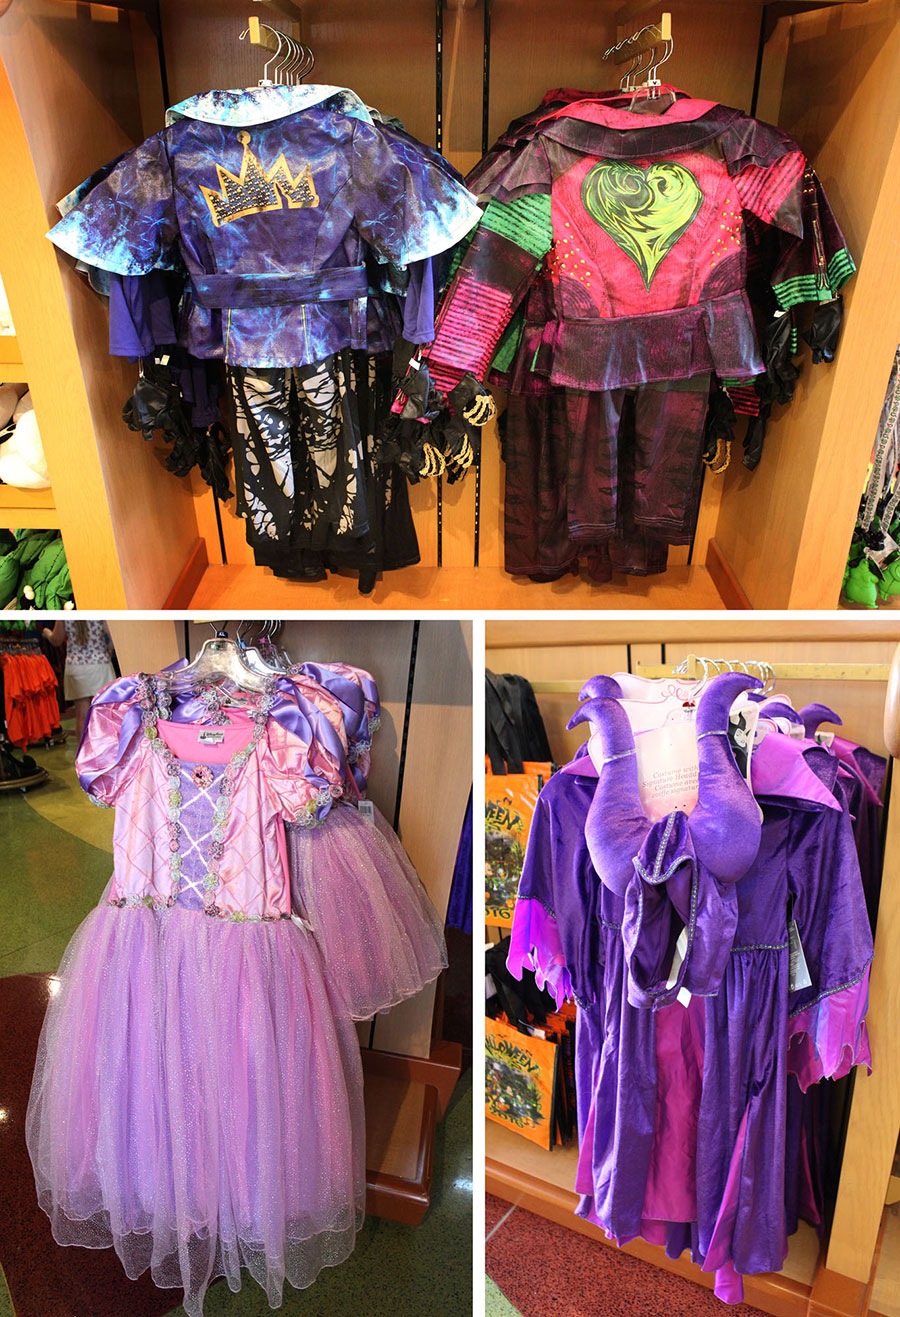 #WonderFALLDisney Halloween Costume Ideas from Disney Parks